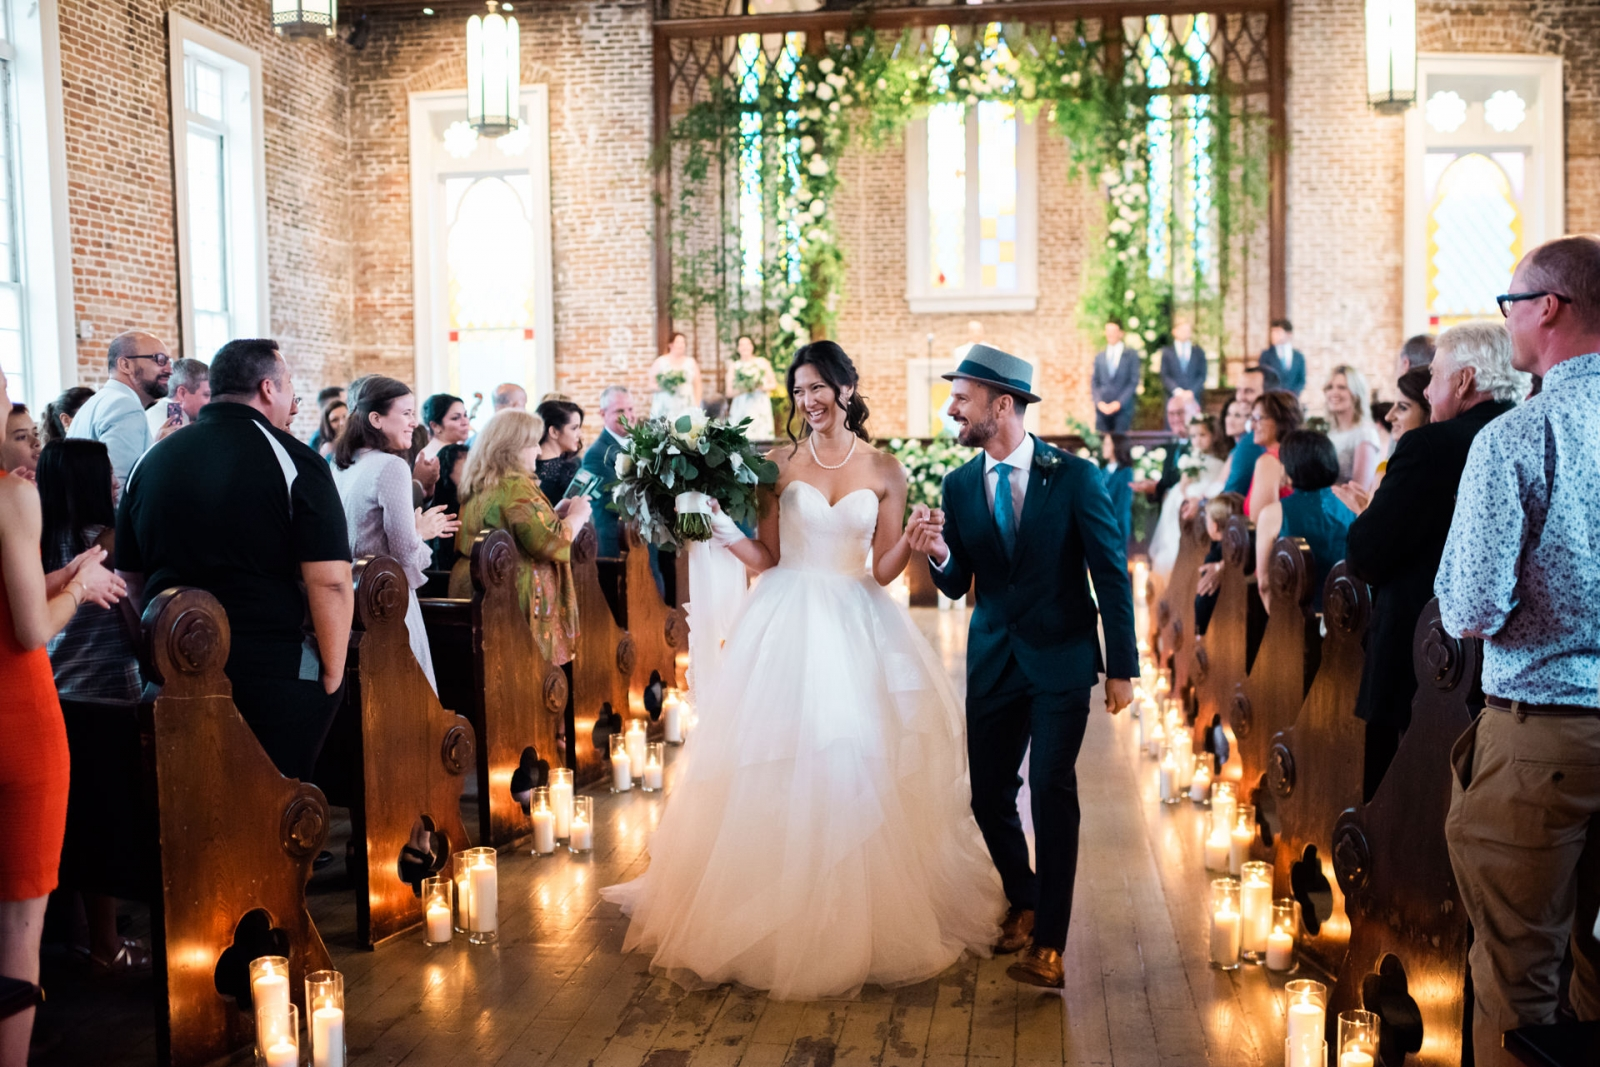 the couple leave their wedding in New Orleans